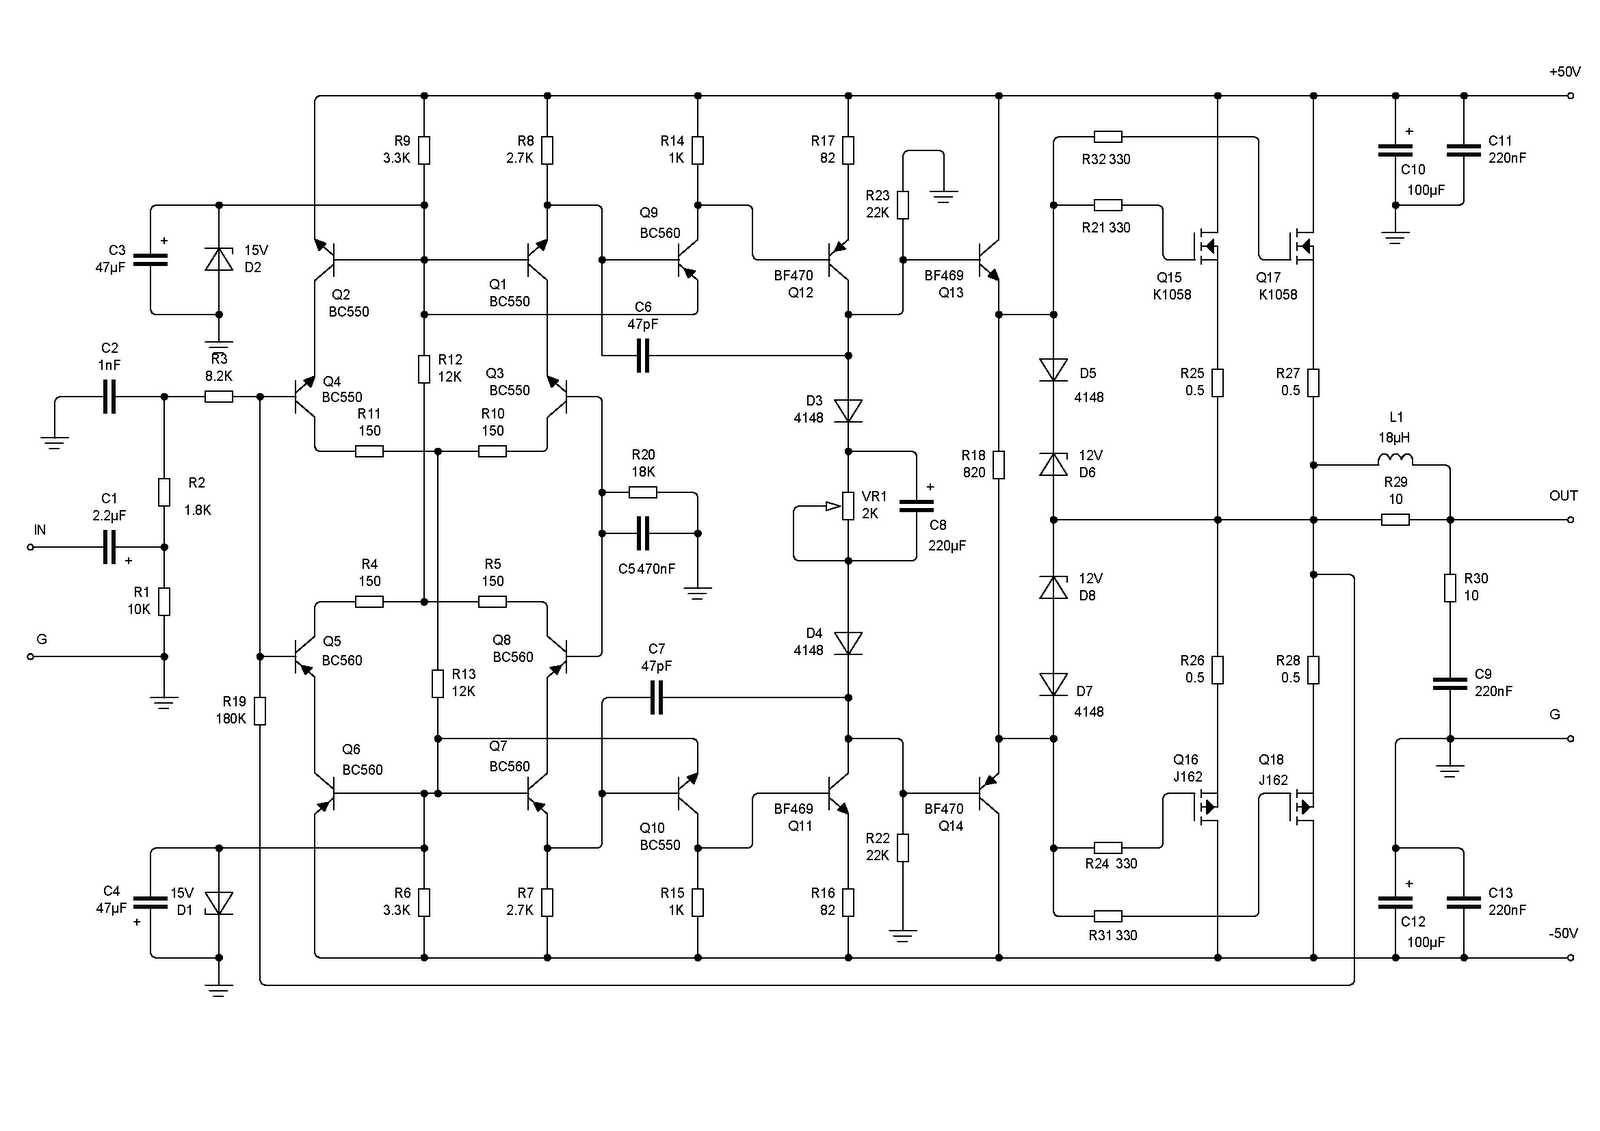 Secret Diagram 200w K1058 J162 Mosfet Class A Audio Amplifier Circuit Switch With Delay Timer Electronic Projects Welcome To Free Dot Com We Want As Amp Is Currently Composed Of Two Completely